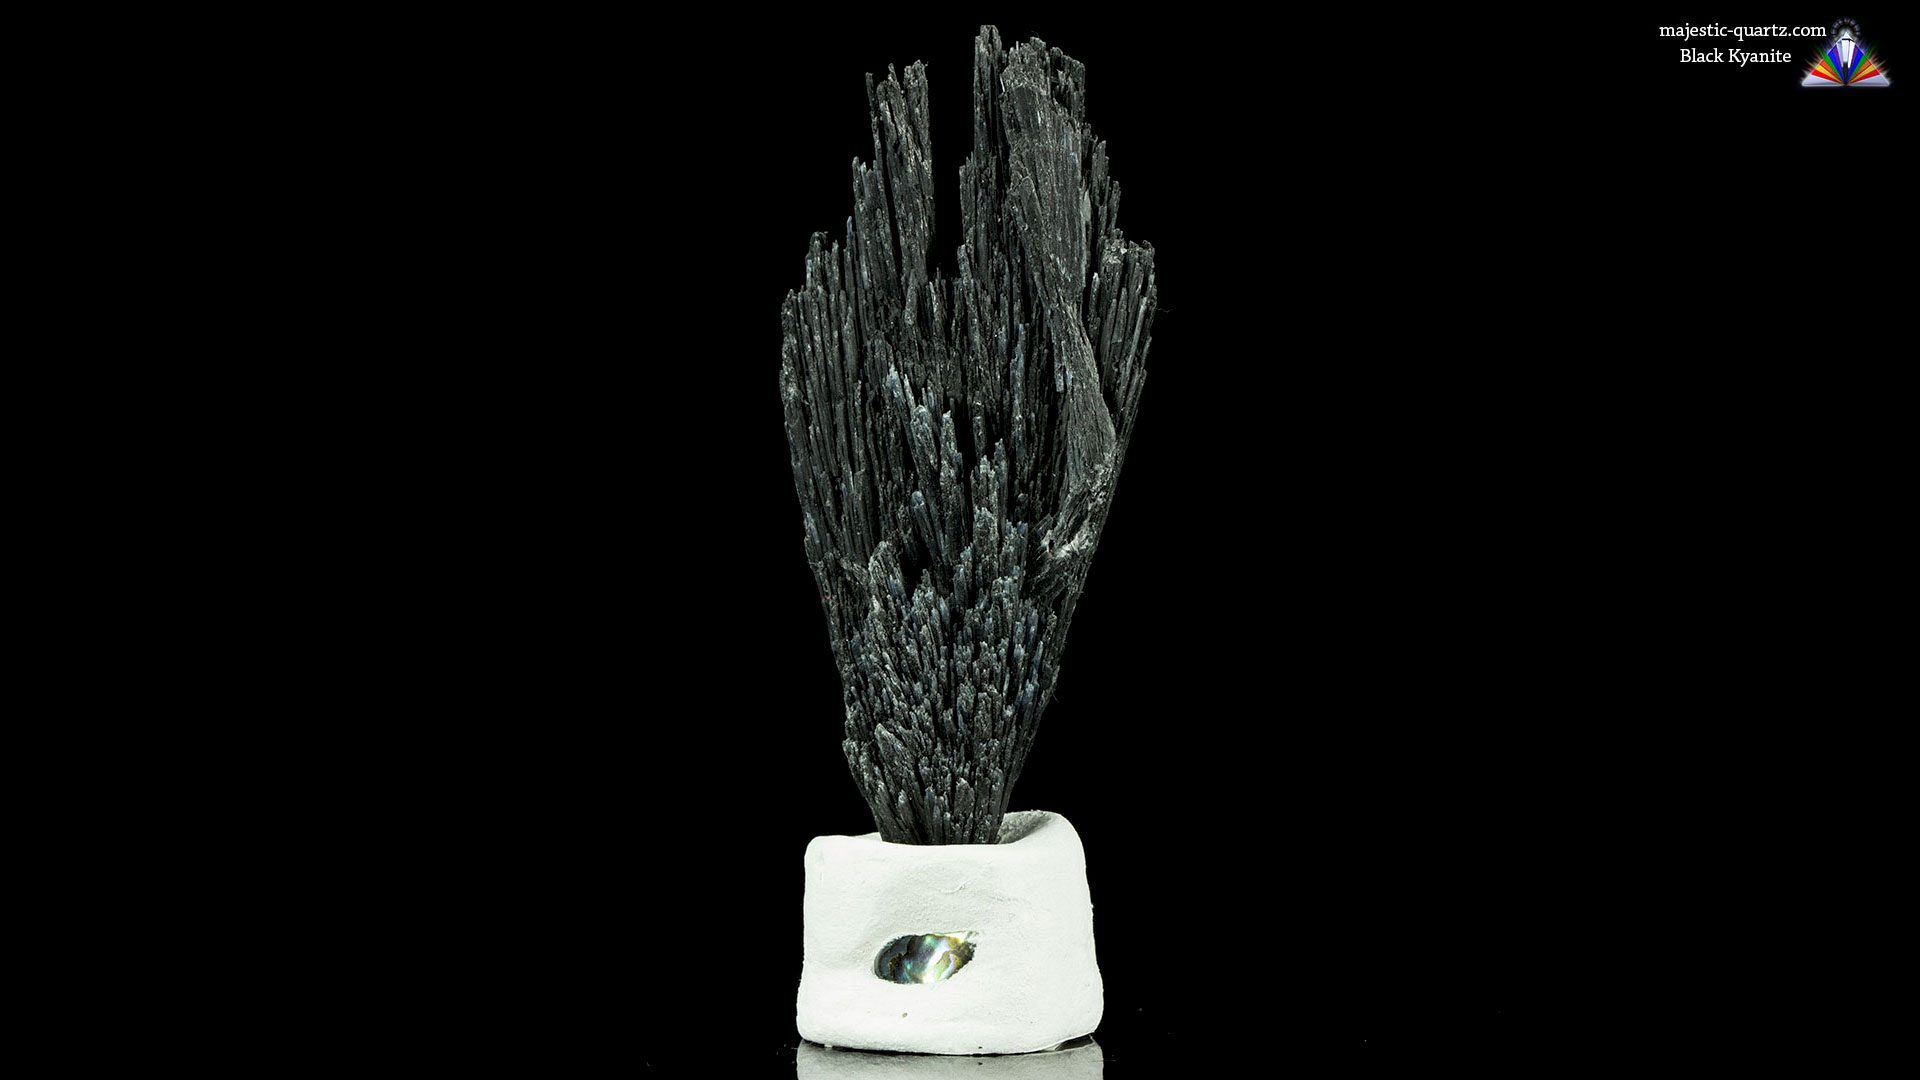 Terminated Black Kyanite Mineral Specimen - Photograph by Anthony Bradford